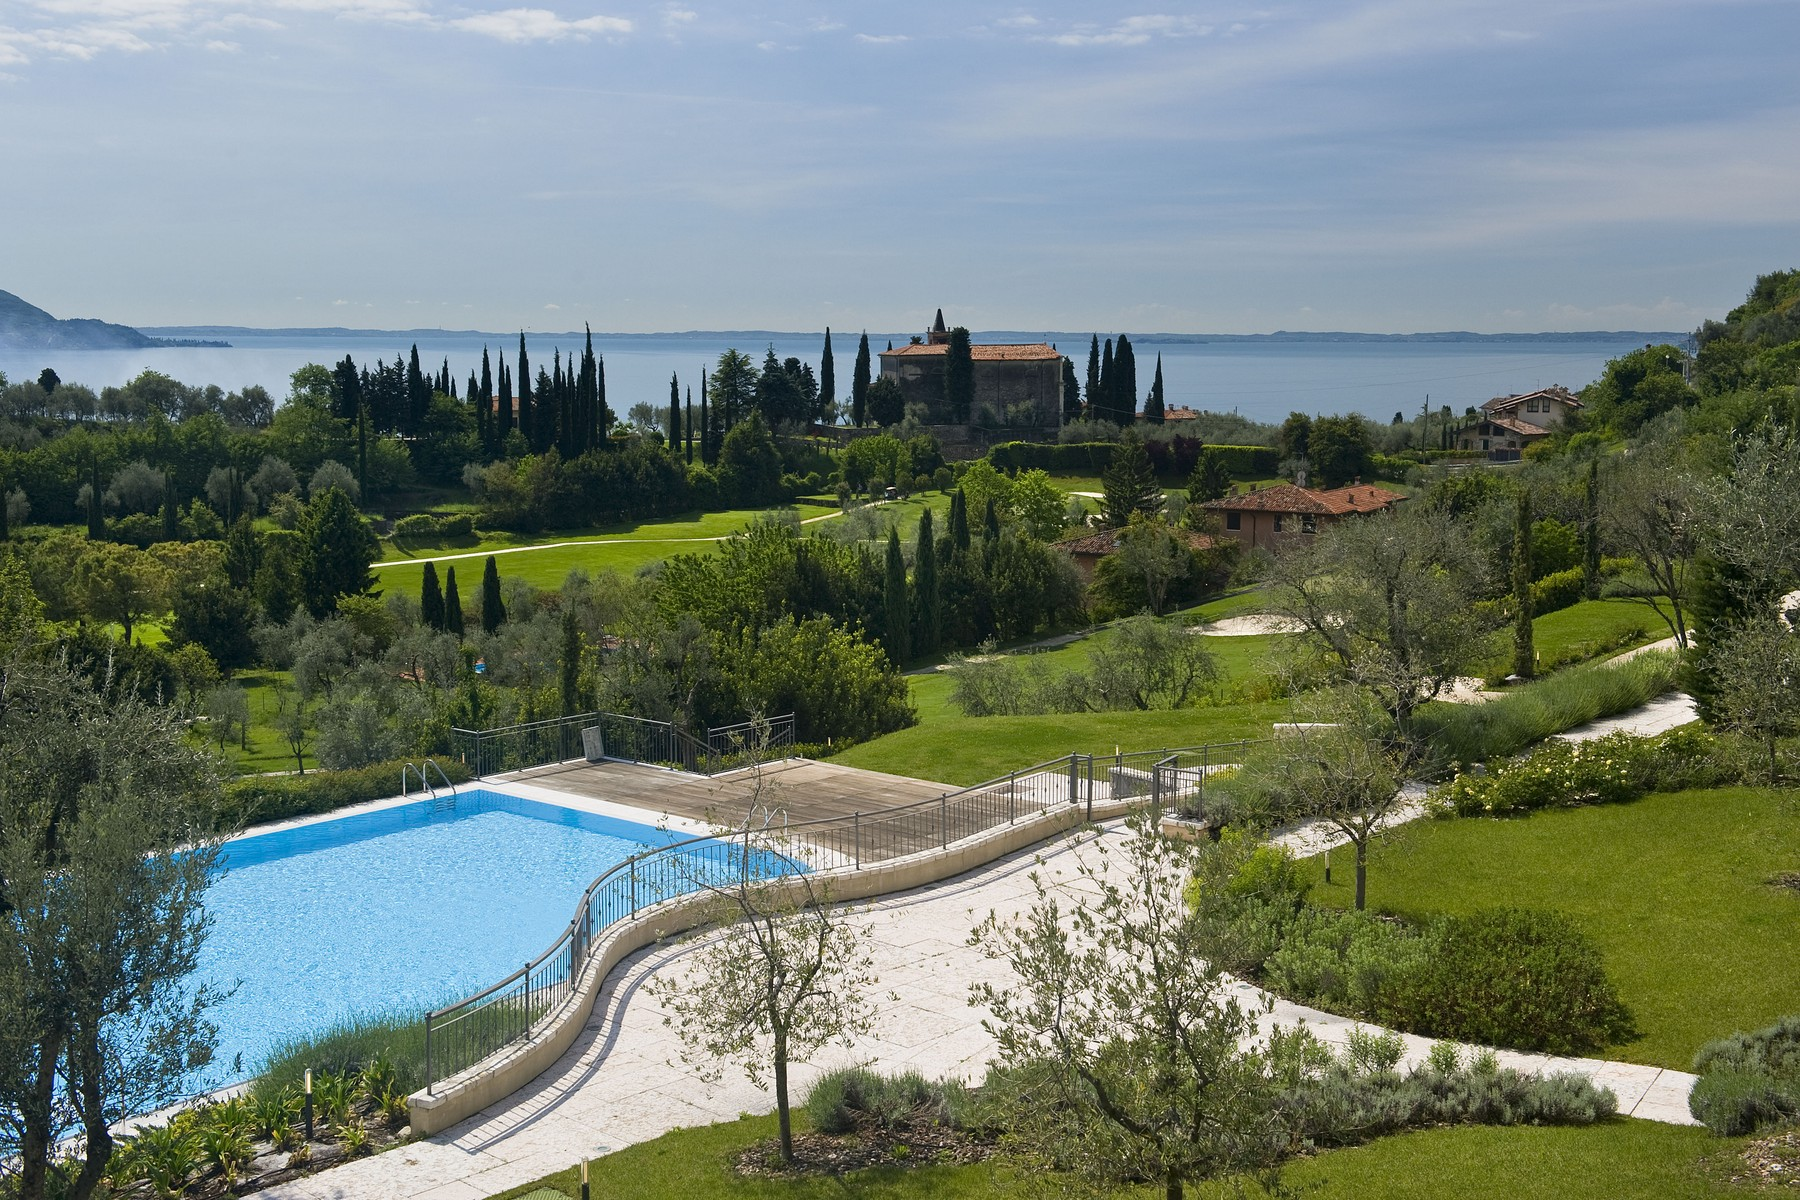 Apartamento por un Venta en New apartments inside the Bogliaco Golf Resort Via del Golf Toscolano Maderno, Brescia 25088 Italia